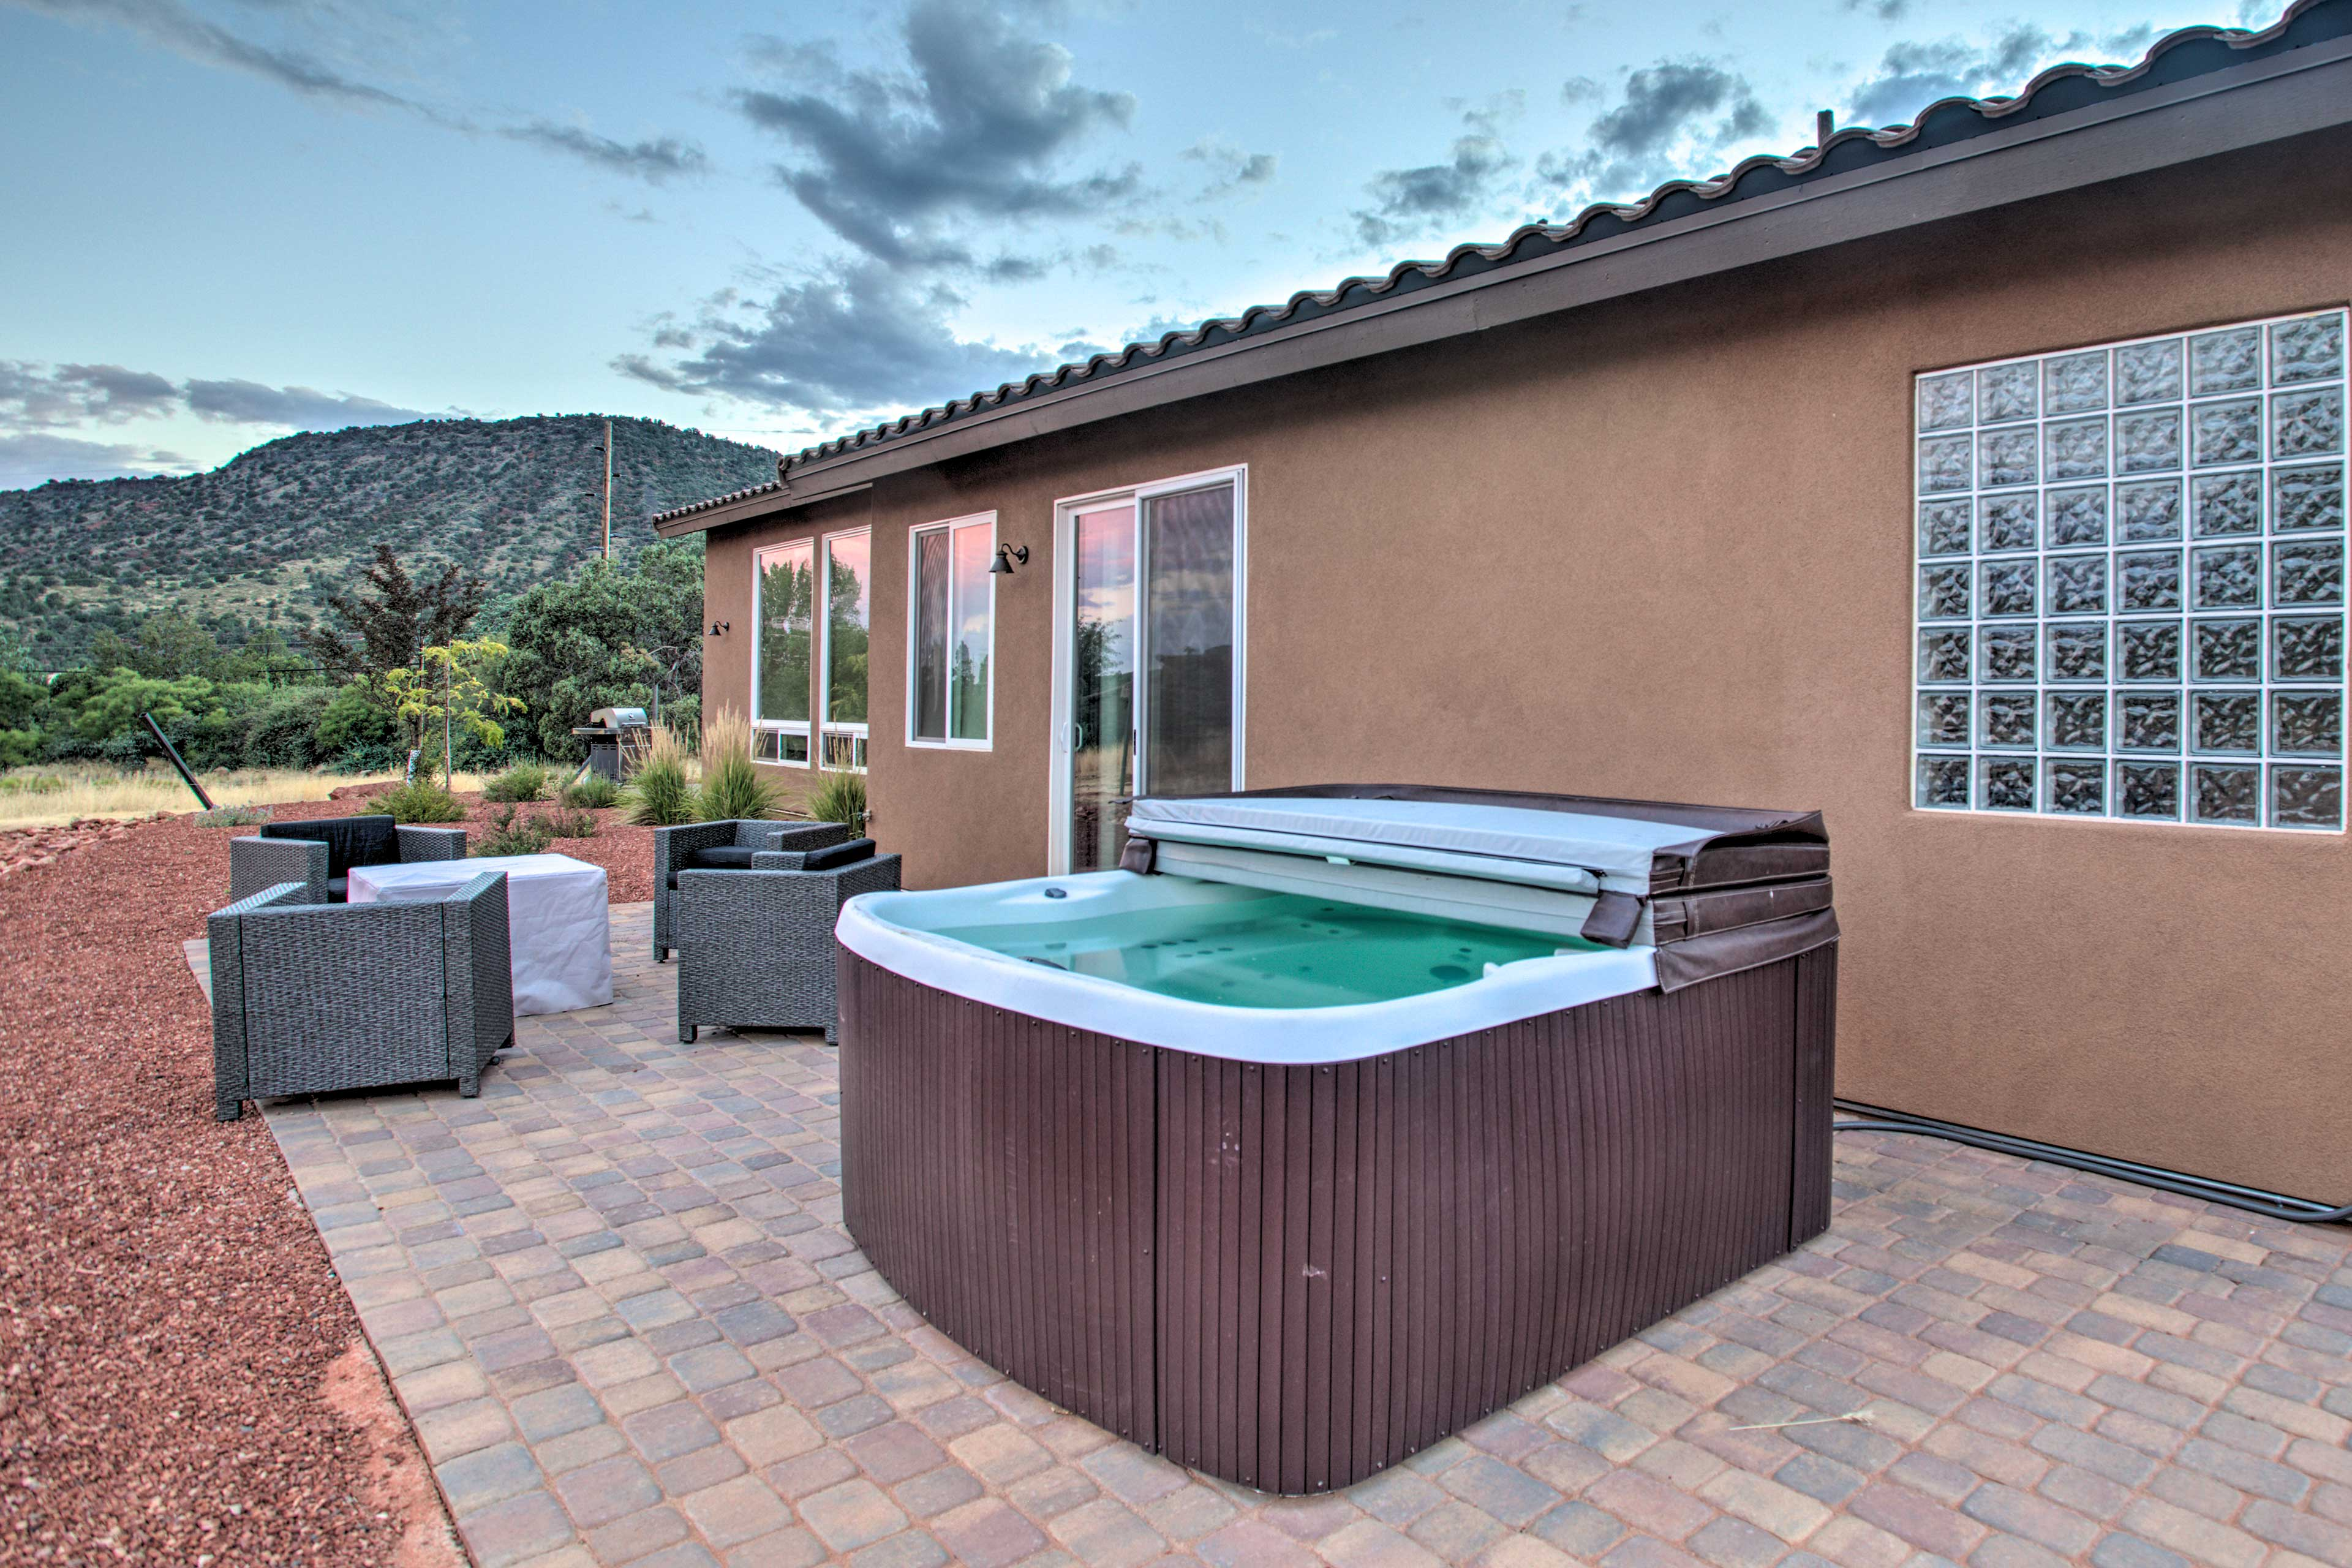 Go for a dip in this newly added hot tub!